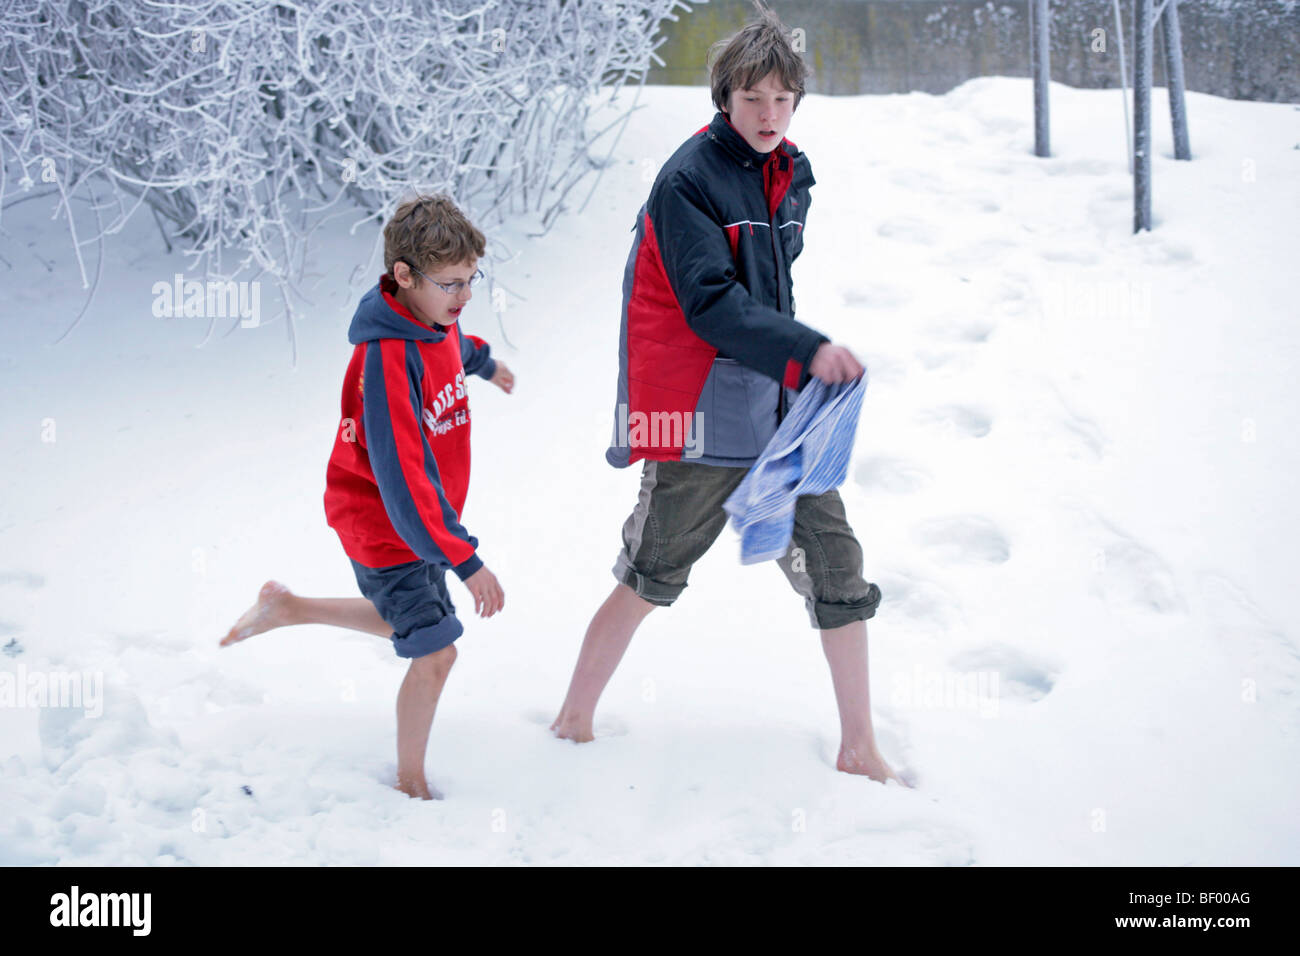 Naked young boys playing in the snow